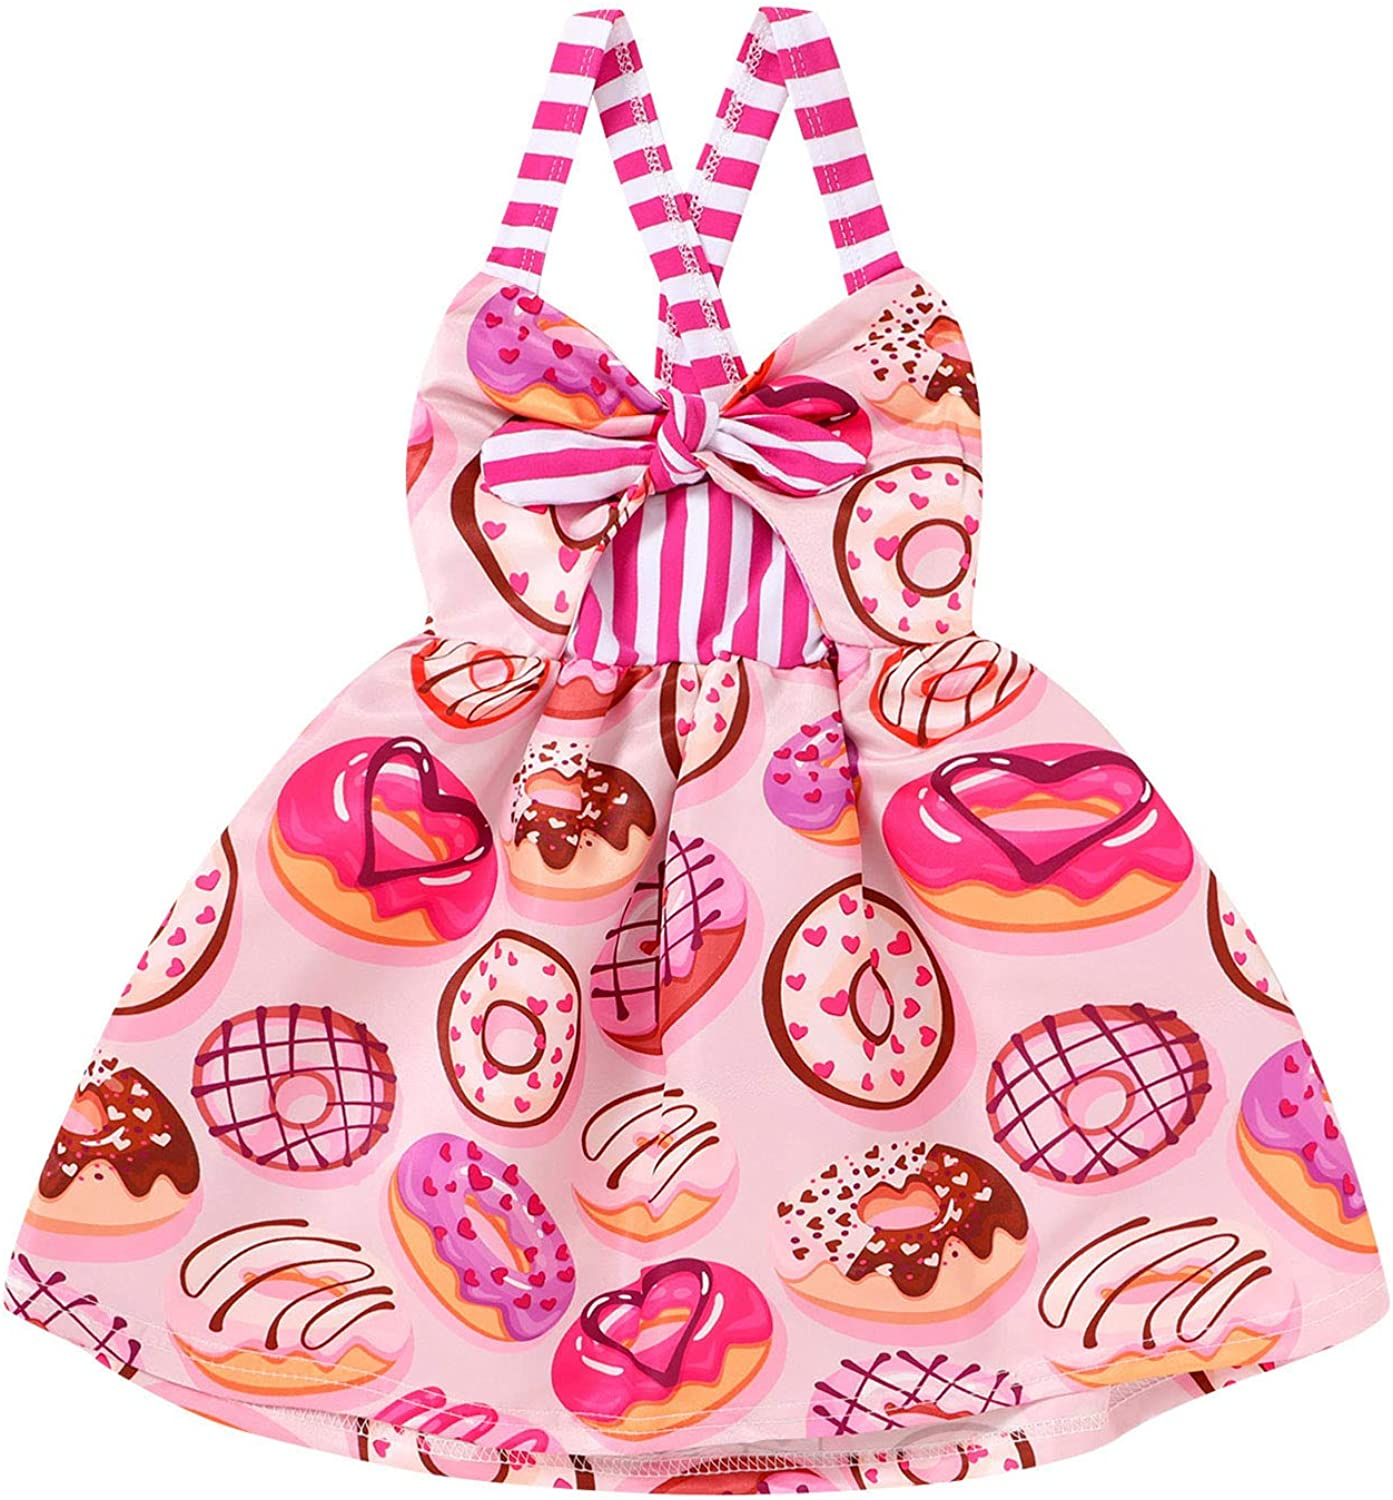 cute baby girl clothes beach holiday outfit toddler summer ice cream skirt 1,5-3 years organic popsicle layered skirt birthday gift idea